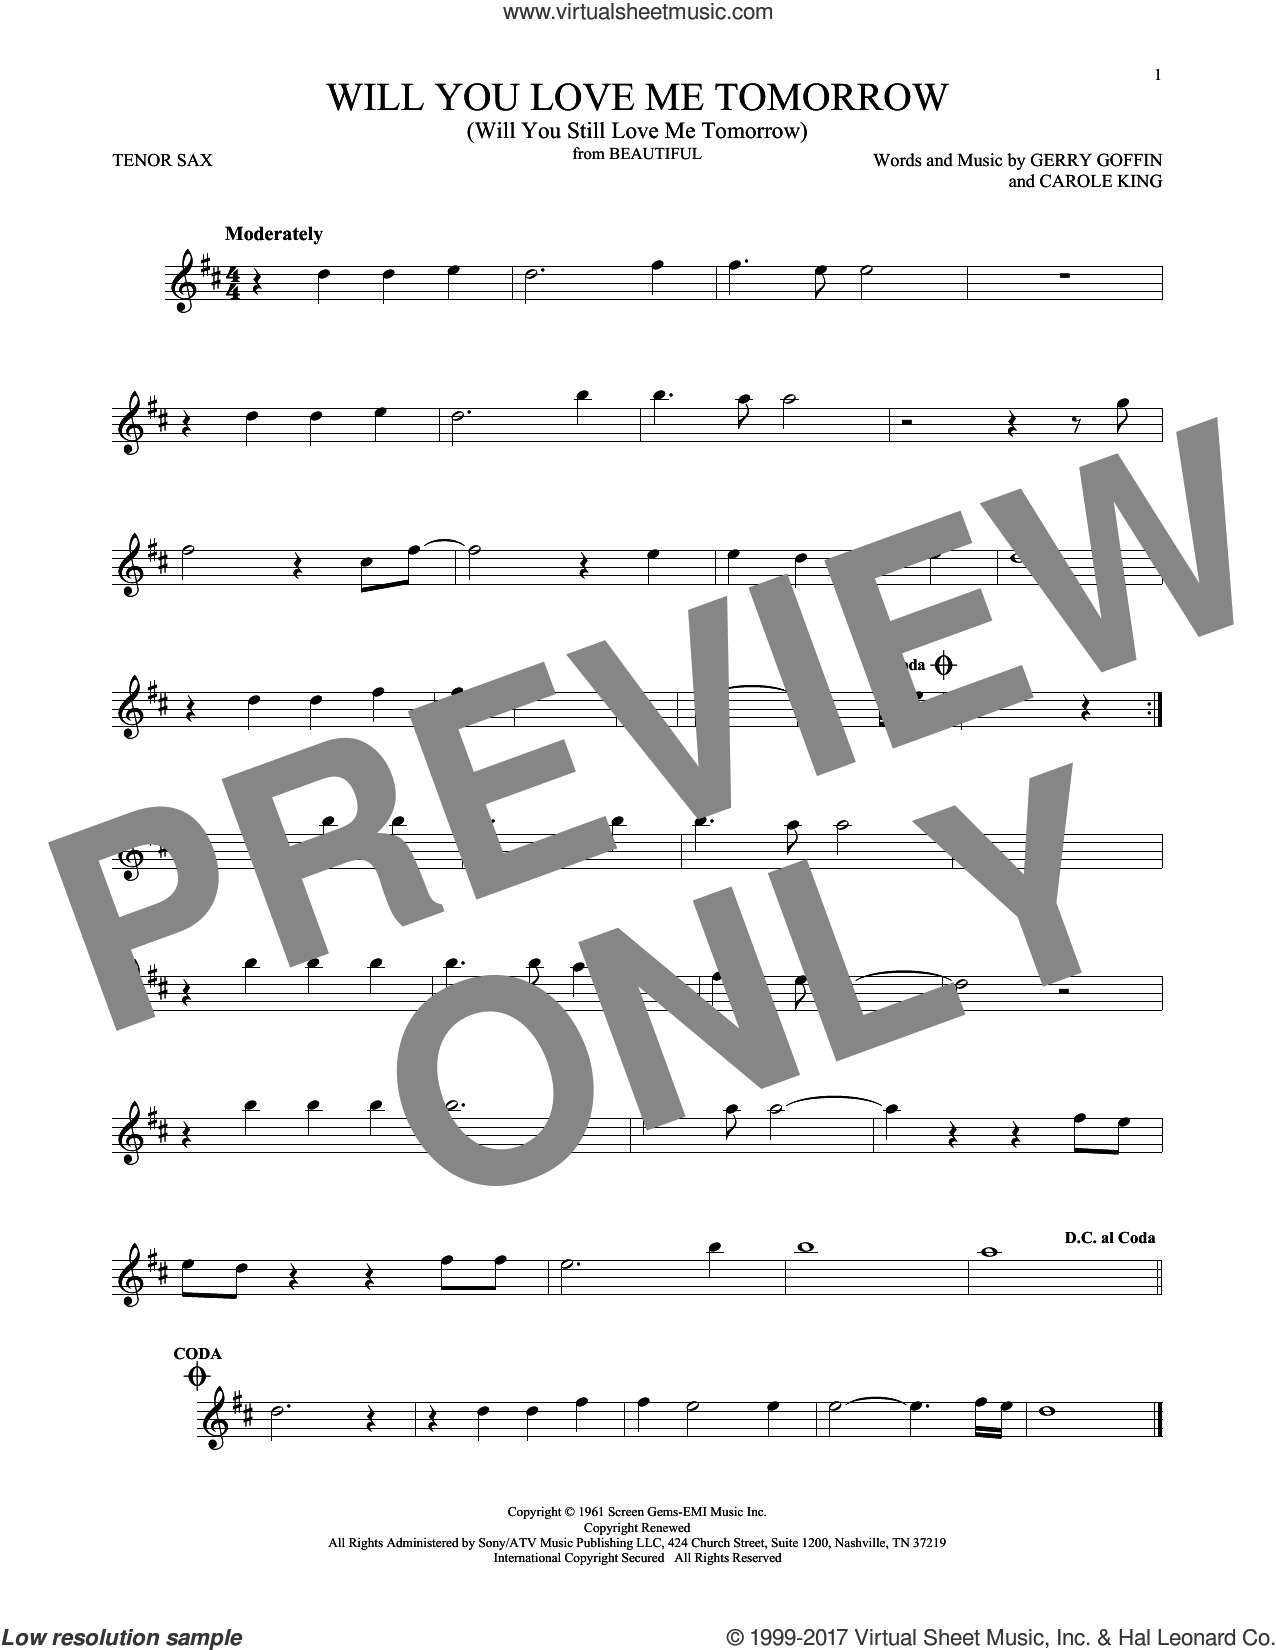 Will You Love Me Tomorrow (Will You Still Love Me Tomorrow) sheet music for tenor saxophone solo by The Shirelles, Carole King and Gerry Goffin, intermediate skill level